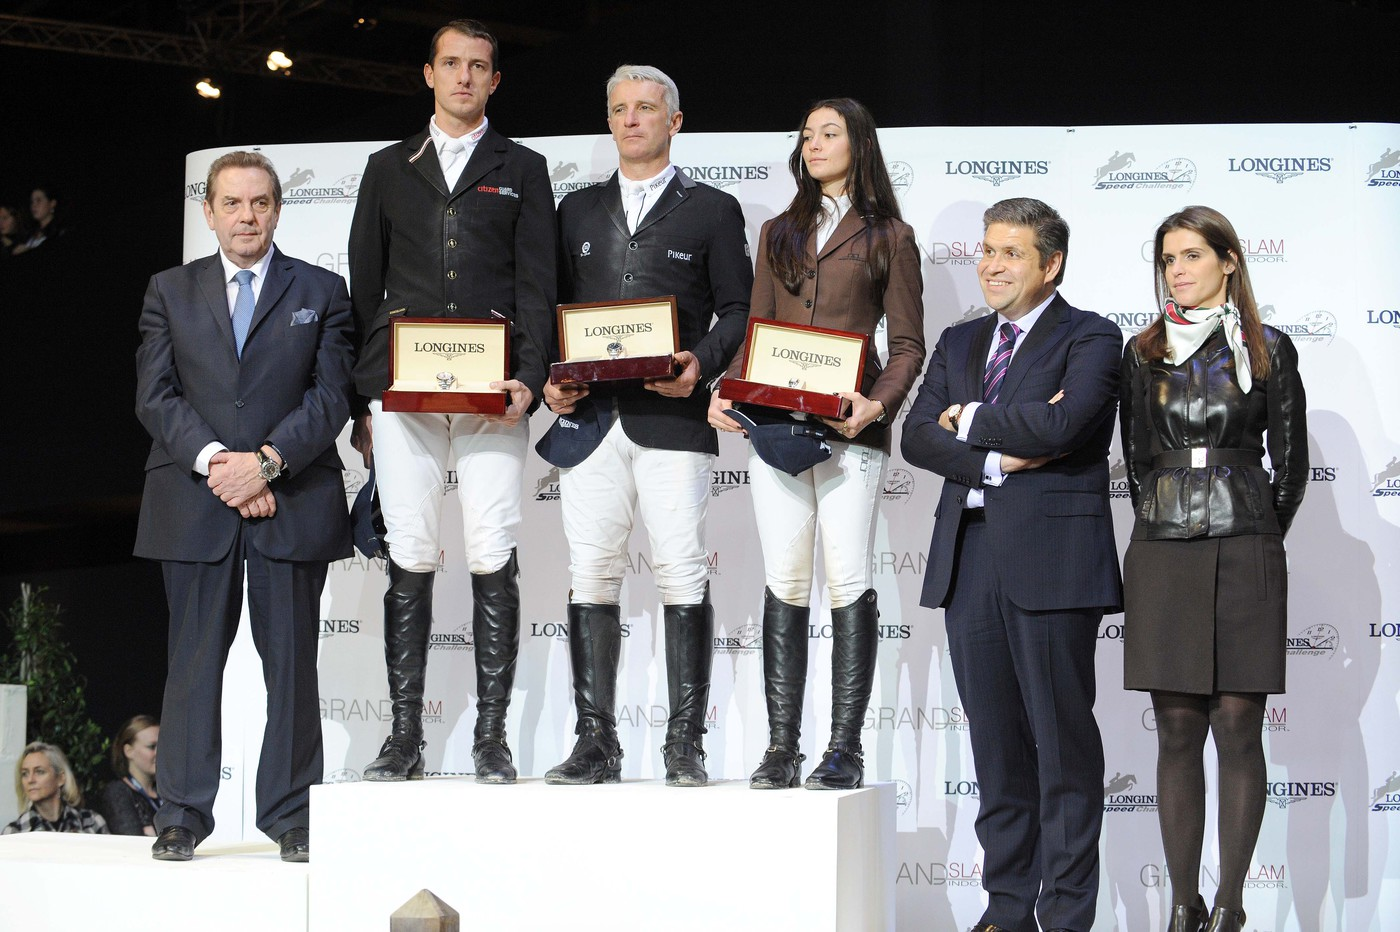 Longines Show Jumping Event: Roger Yves Bost wins the Longines Speed Challenge 4